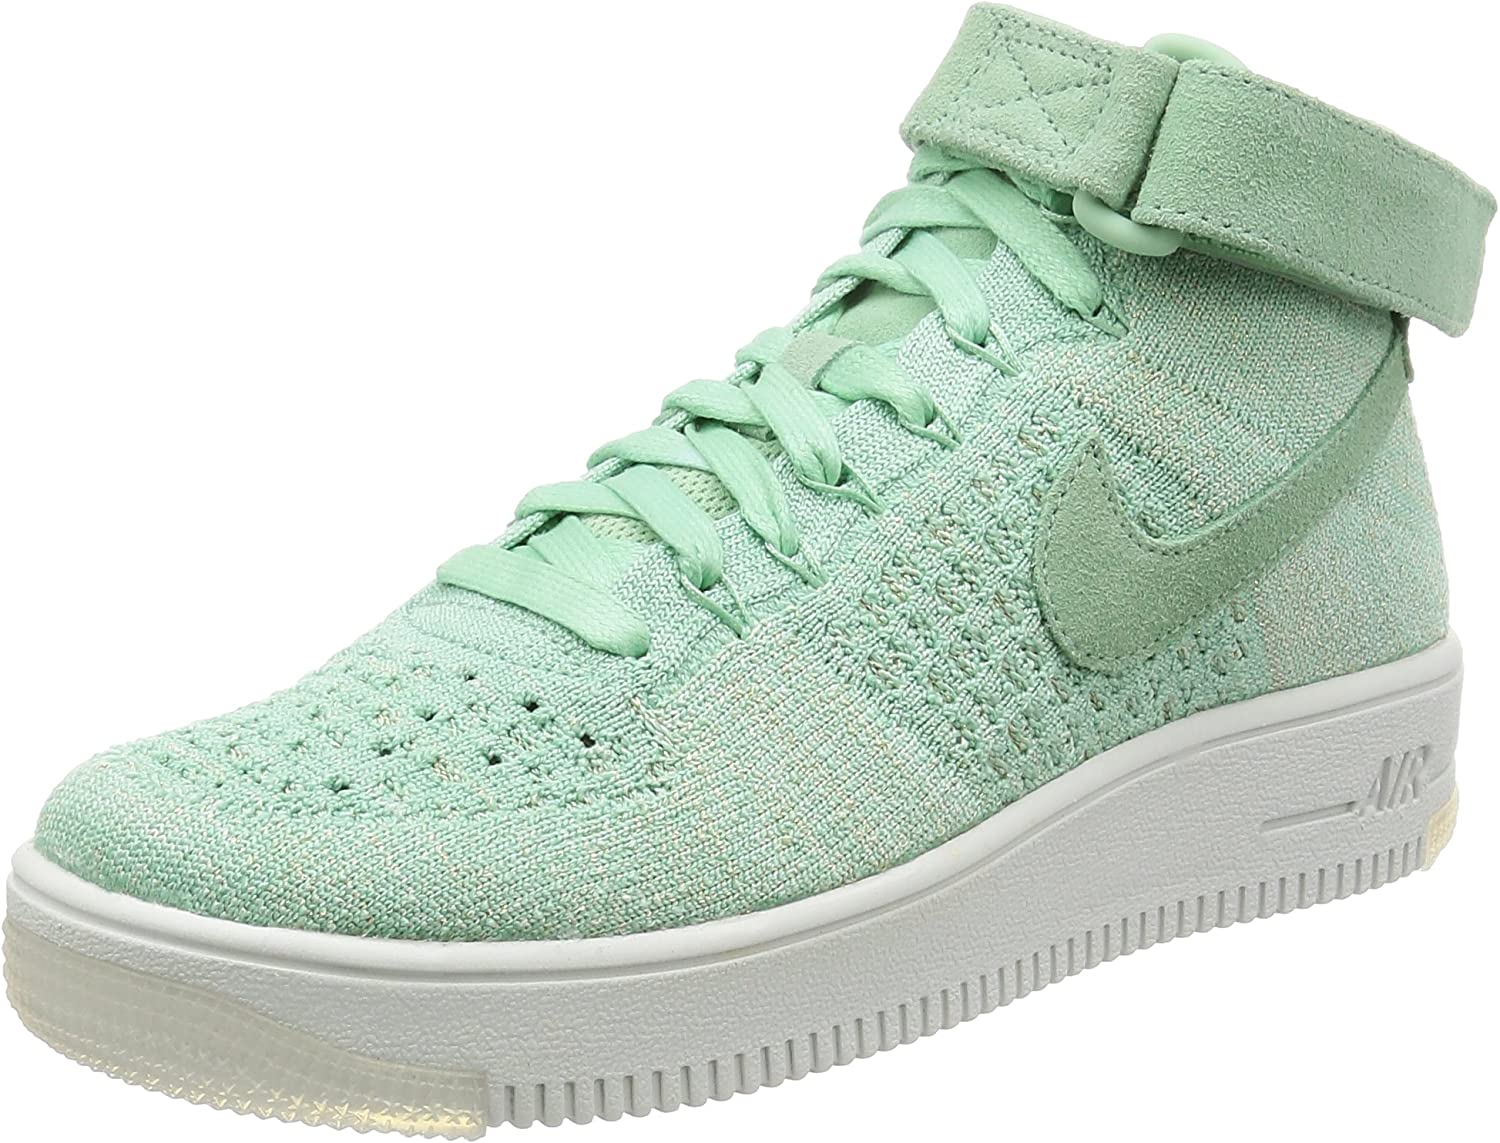 Nike Womens AF1 Air Force 1 Flyknit Hi Top Trainers 818018 Sneakers shoes